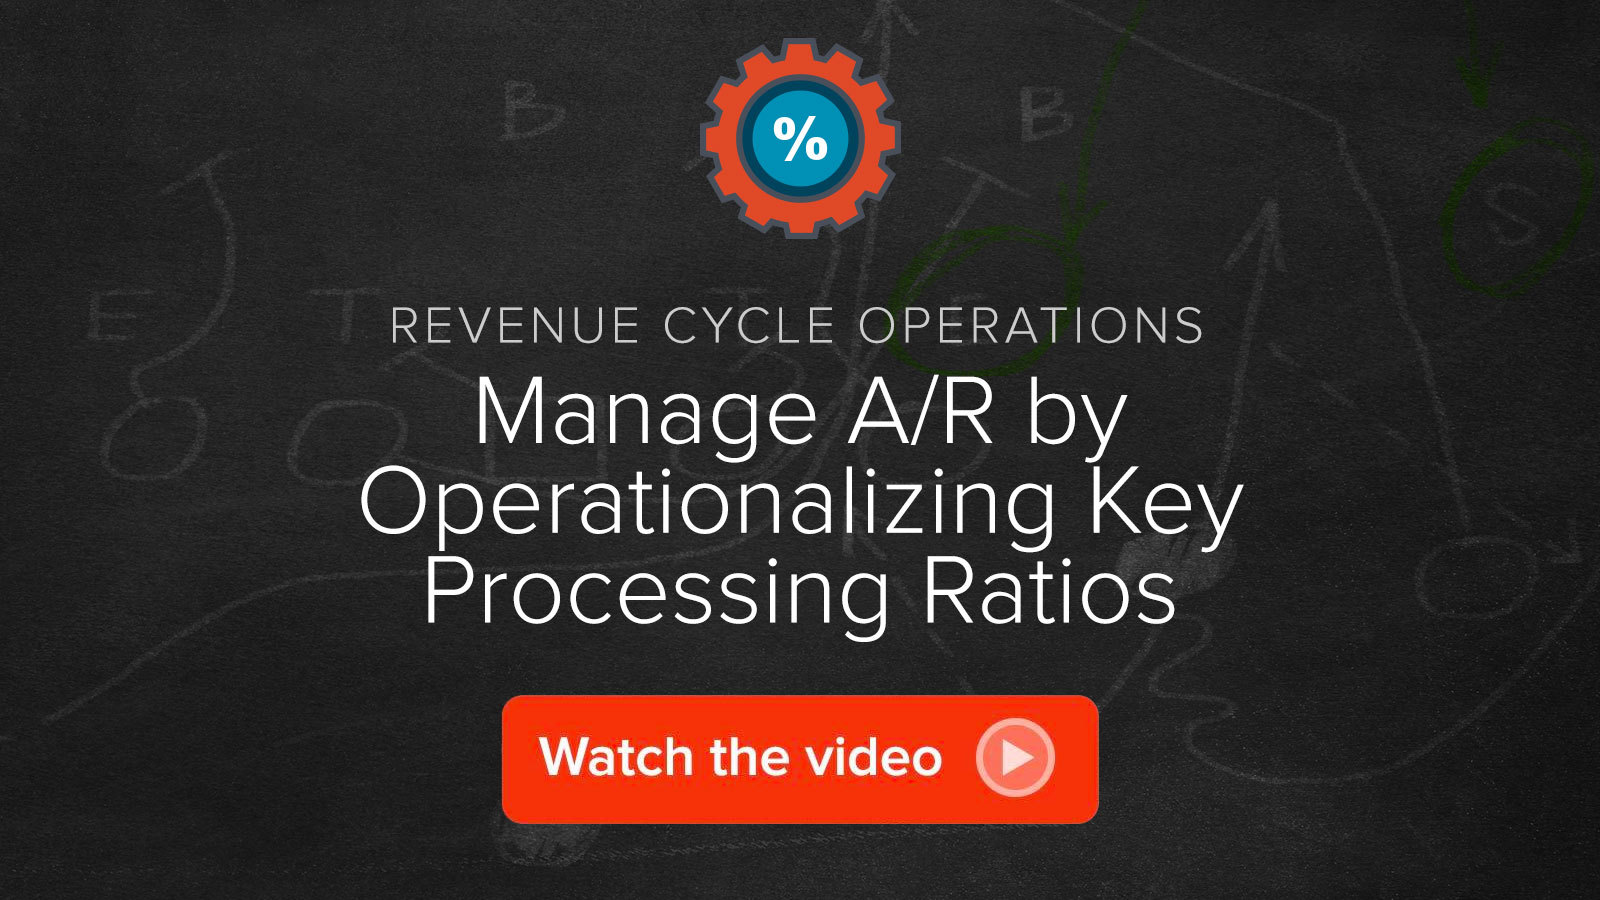 Watch the Manage A/R by Operationalizing Key Processing Ratios video